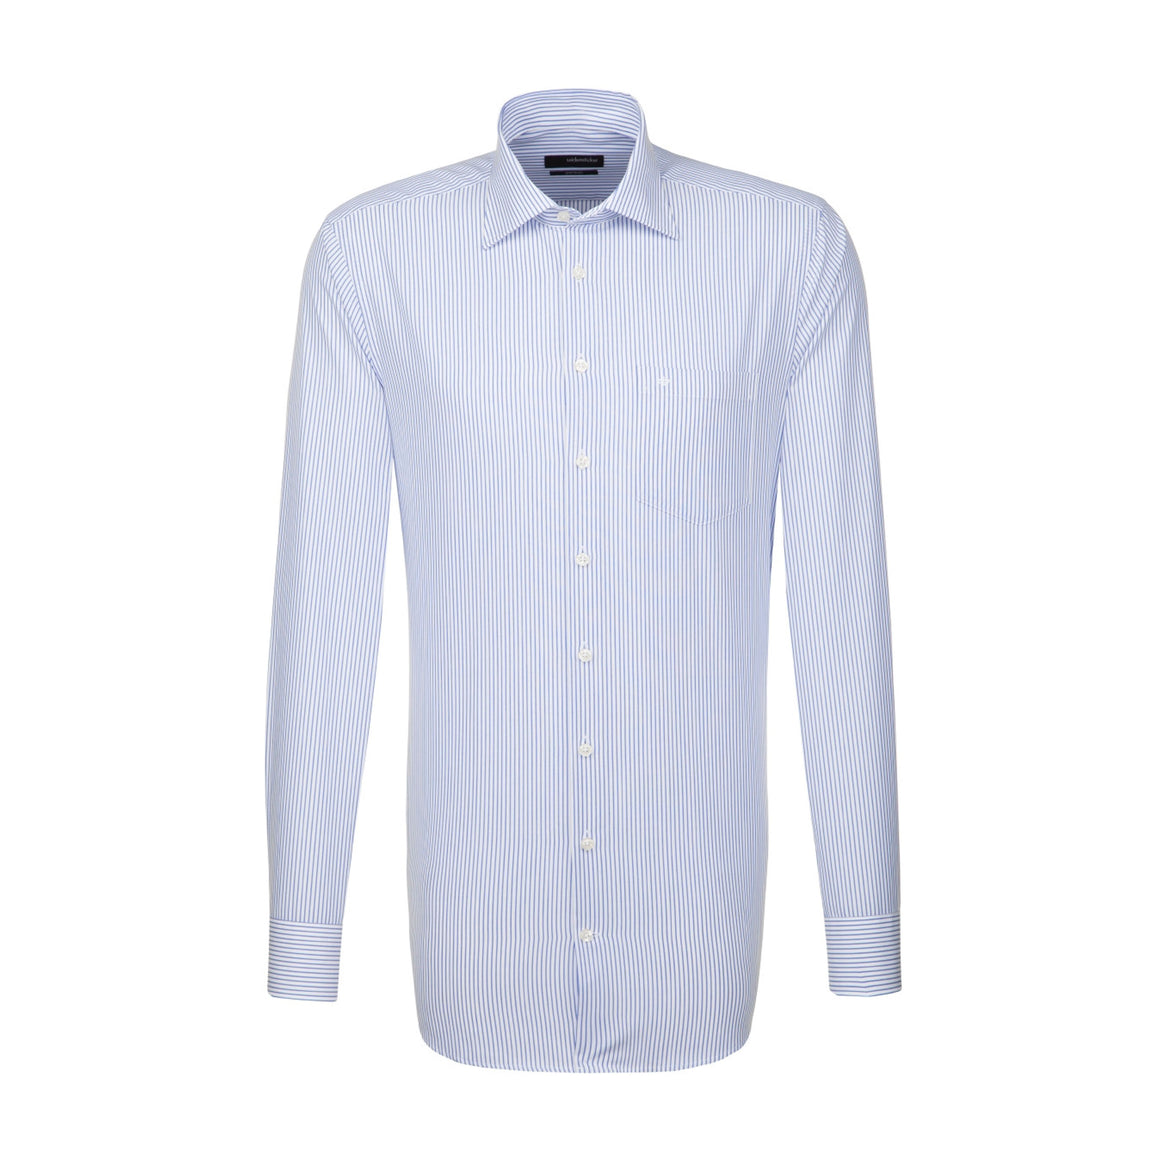 XLS Regular Fit S/C Shirt for Men in White & Black